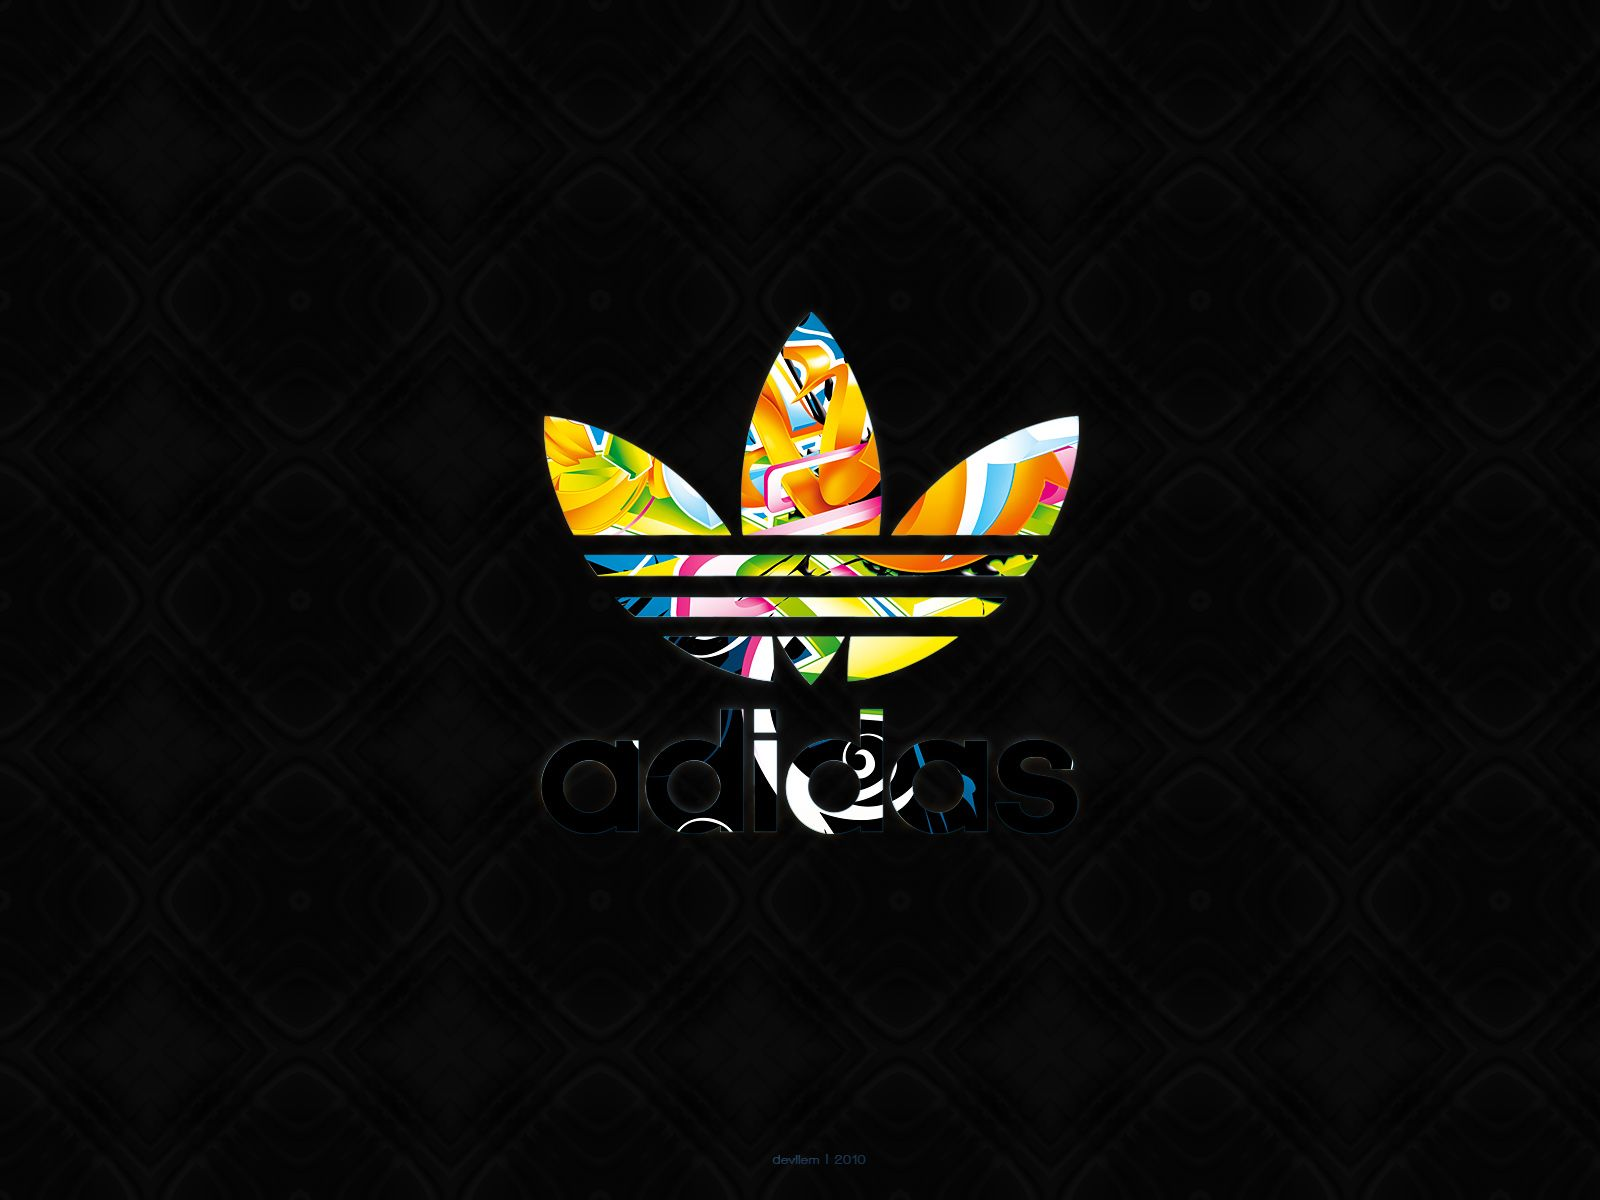 adidas black background logo 19 33935 hd images wallpapers